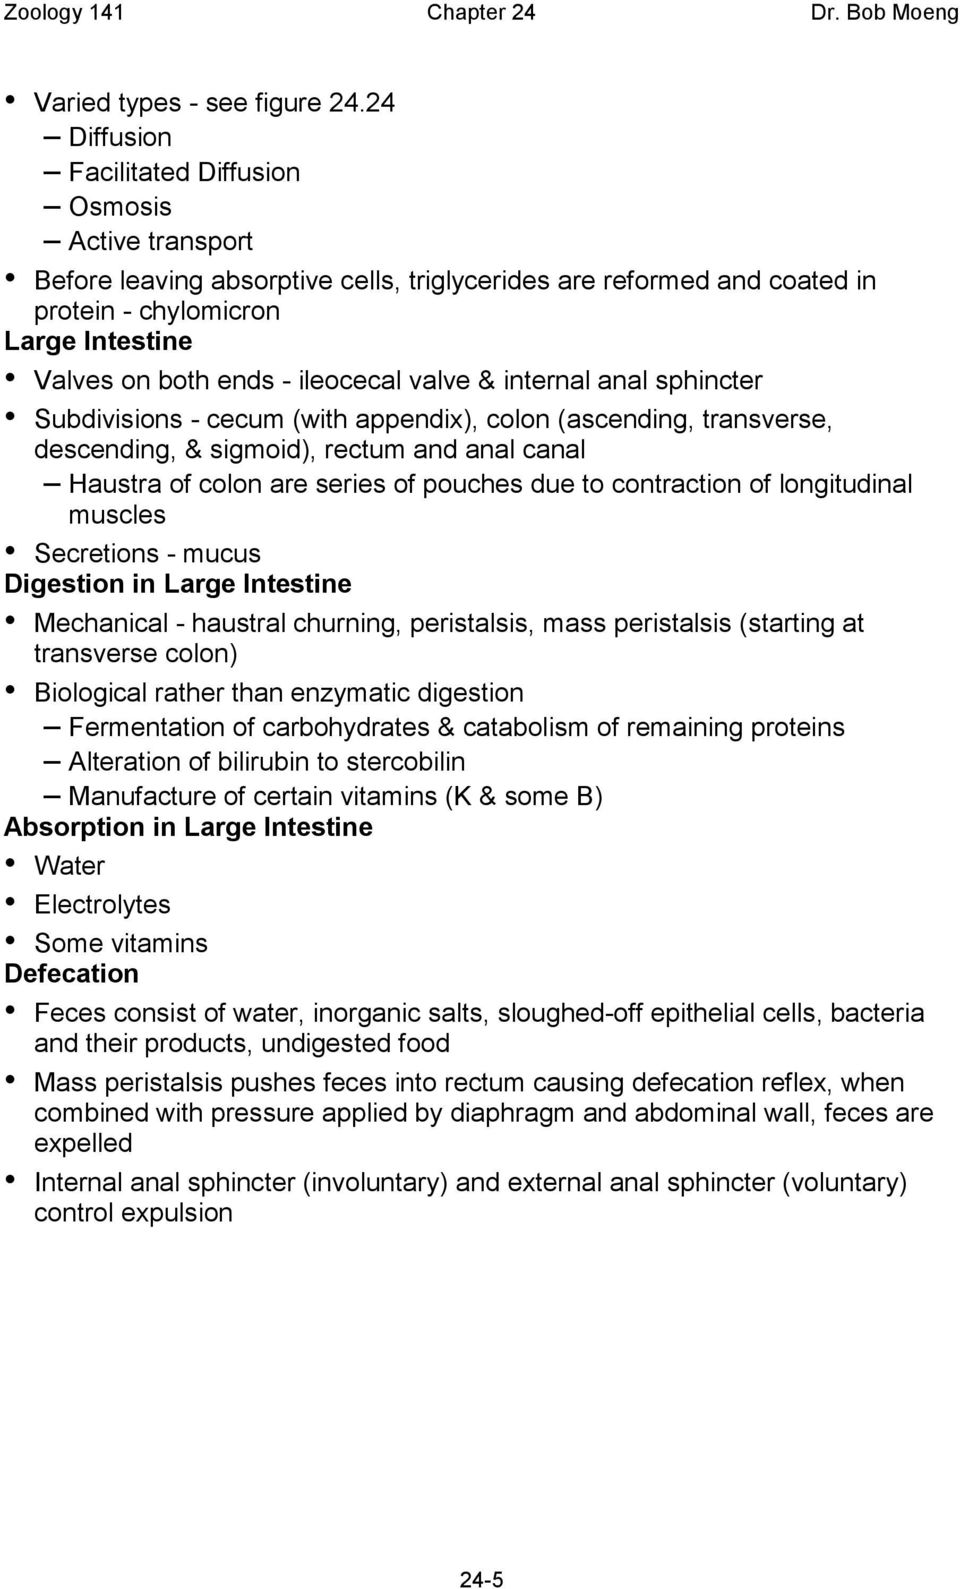 ileocecal valve & internal anal sphincter Subdivisions - cecum (with appendix), colon (ascending, transverse, descending, & sigmoid), rectum and anal canal Haustra of colon are series of pouches due